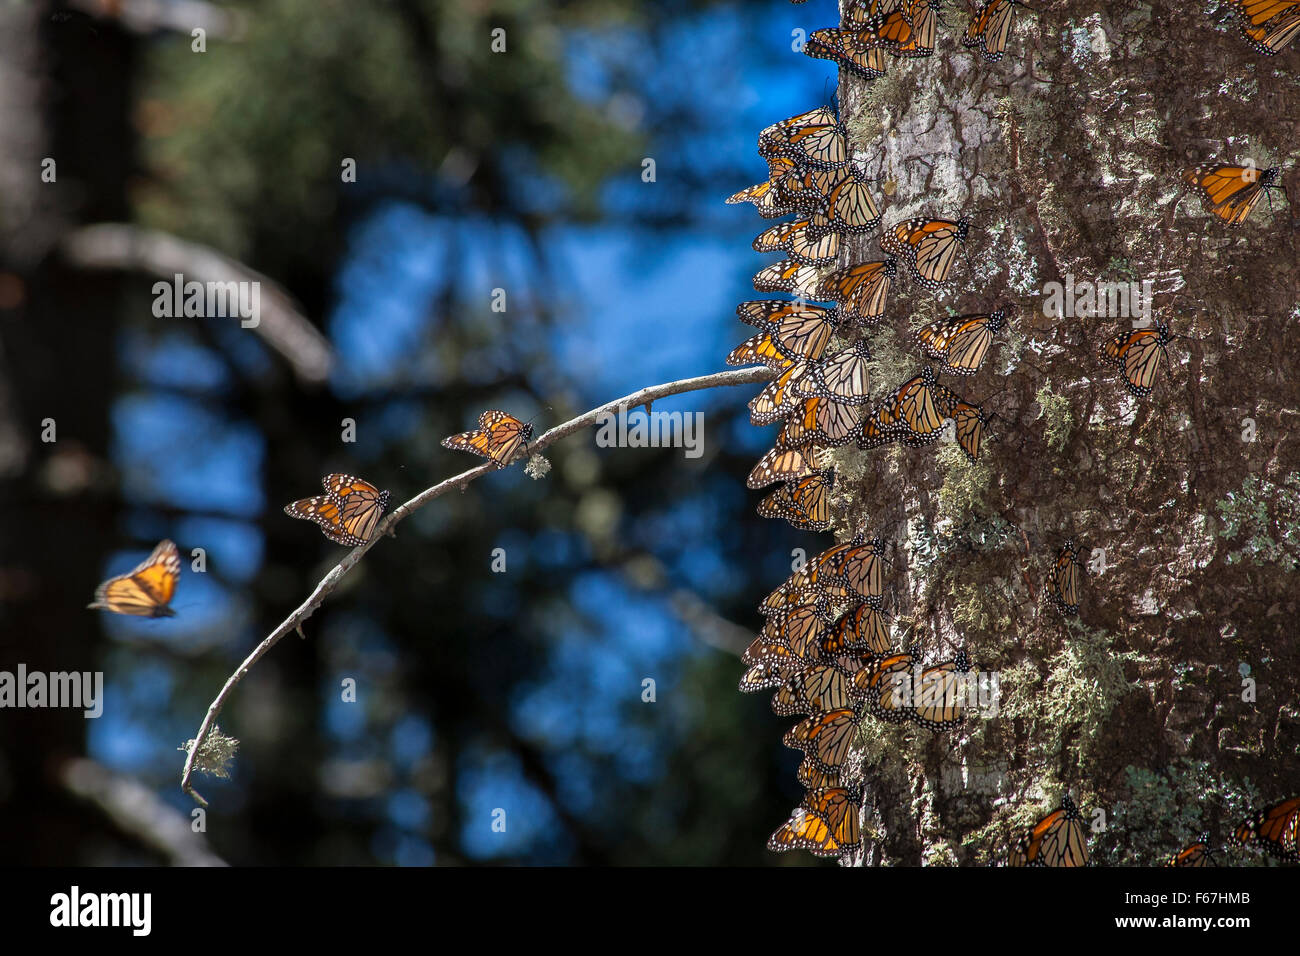 Monarch butterflies cling to an oyamel fir tree in the monarch butterfly sanctuary in Michoacan, Mexico. - Stock Image